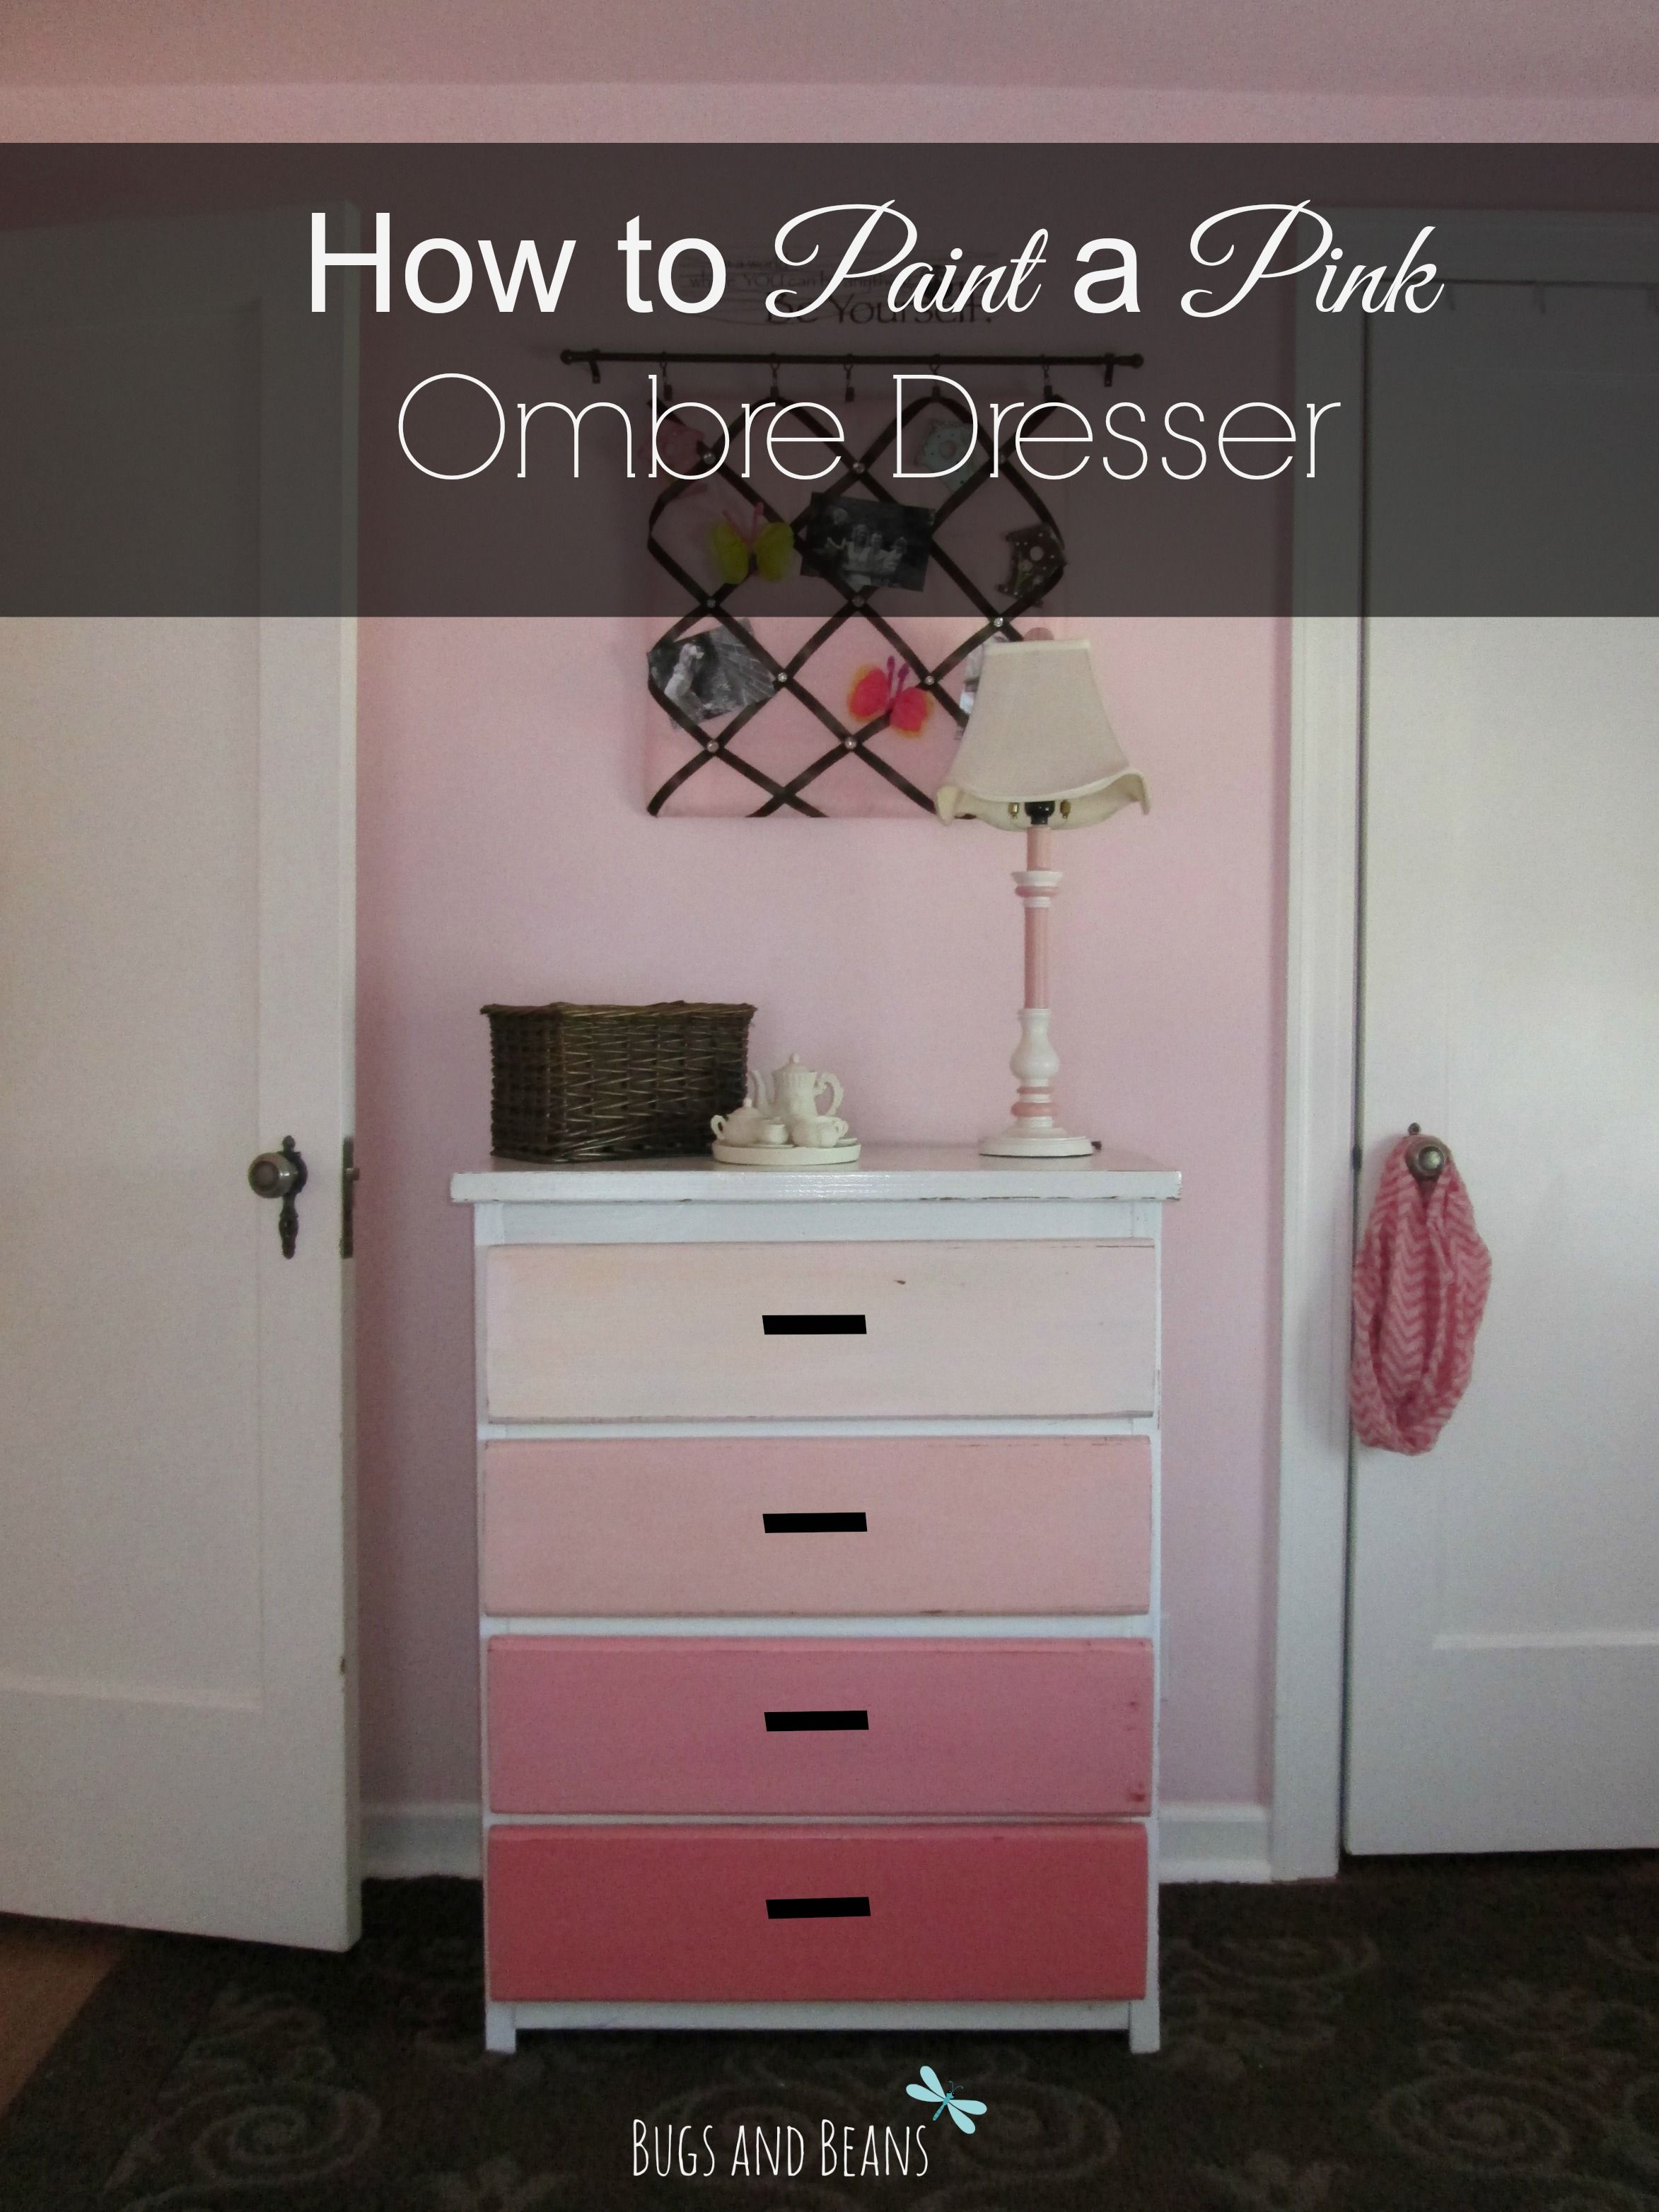 How To Paint A Pink Ombre Dresser